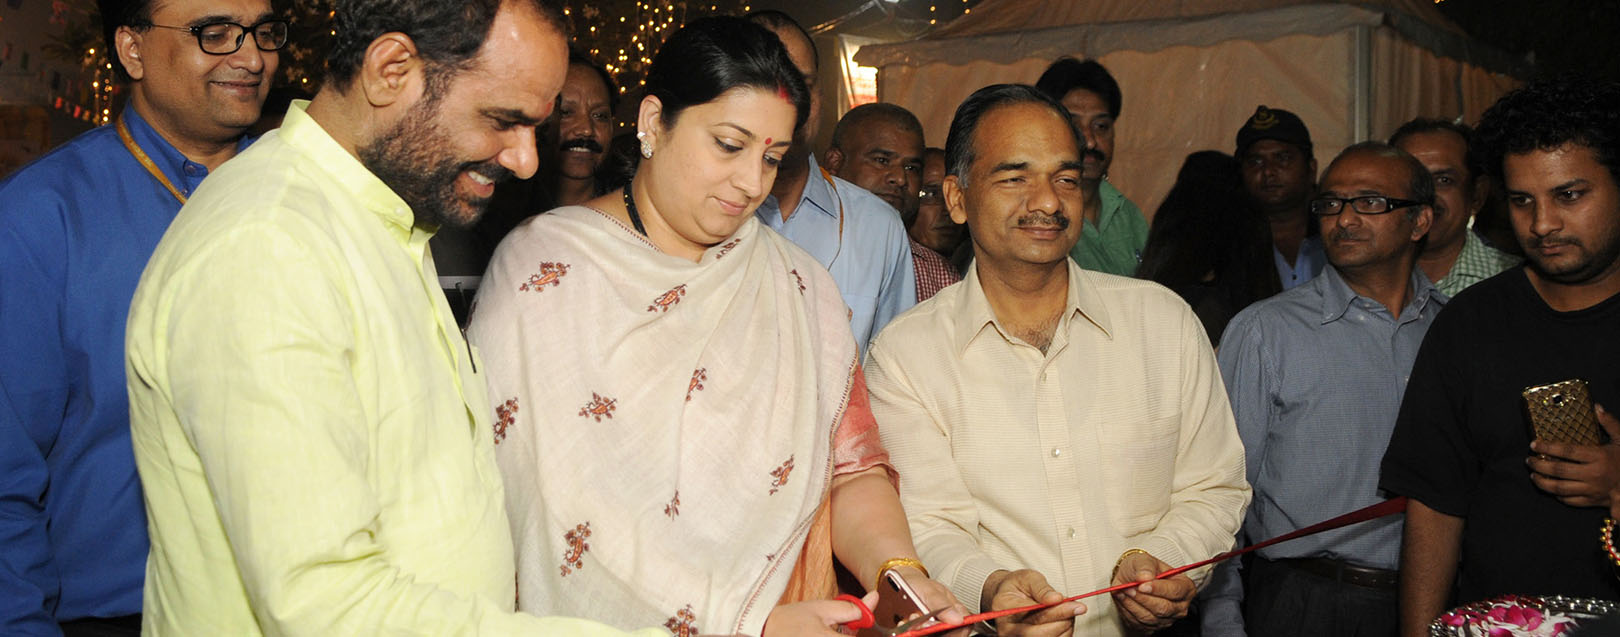 Govt. to modify stall allotment policy at Dilli Haat in two weeks: Smriti Zubin Irani